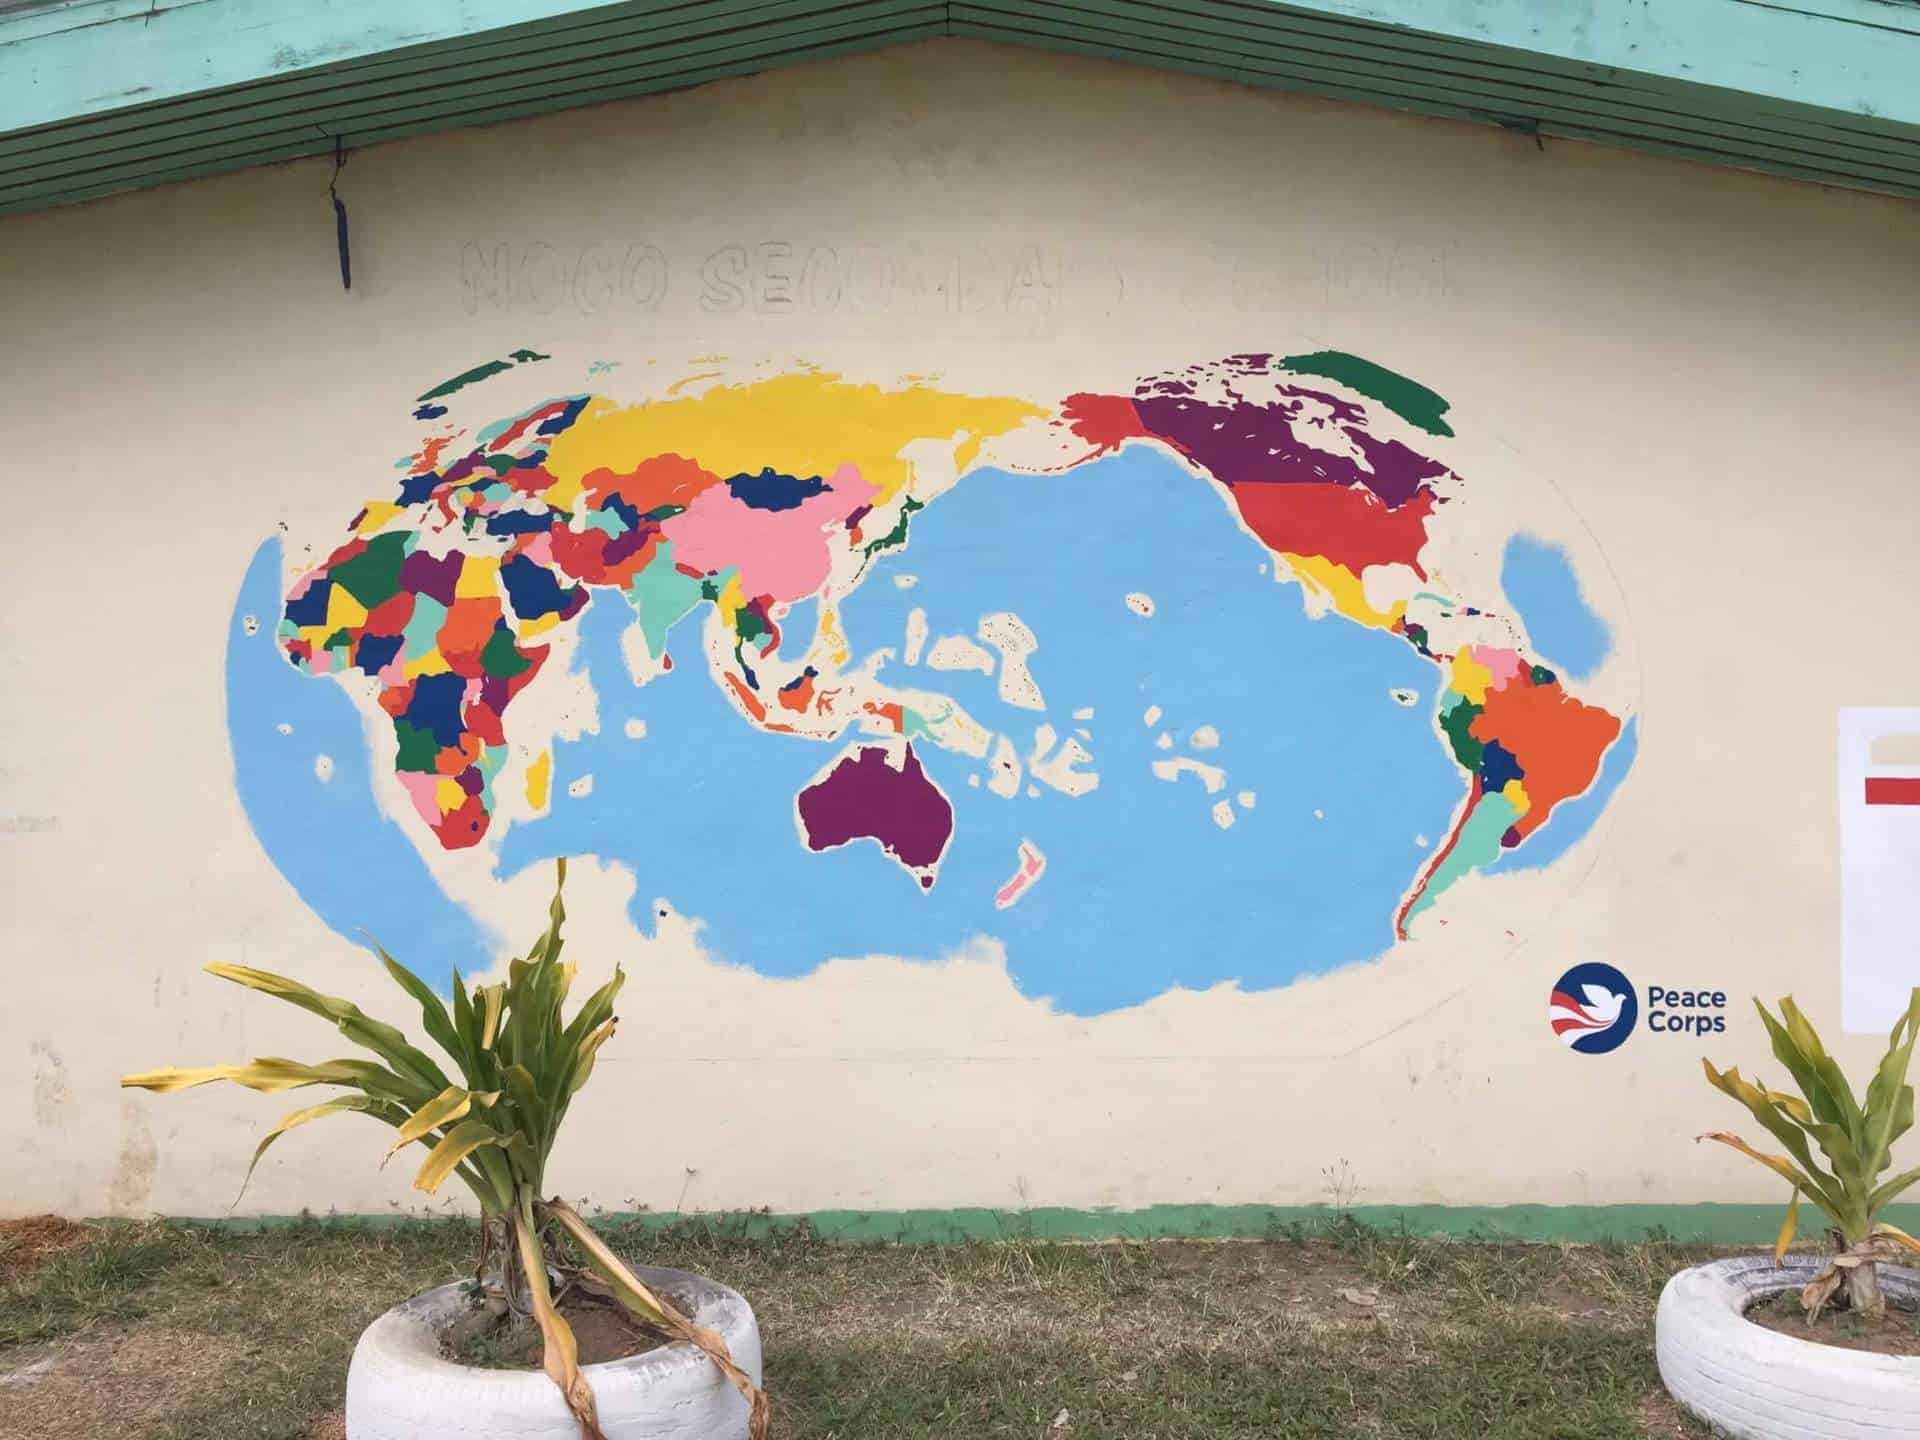 World Map mural - work in progress